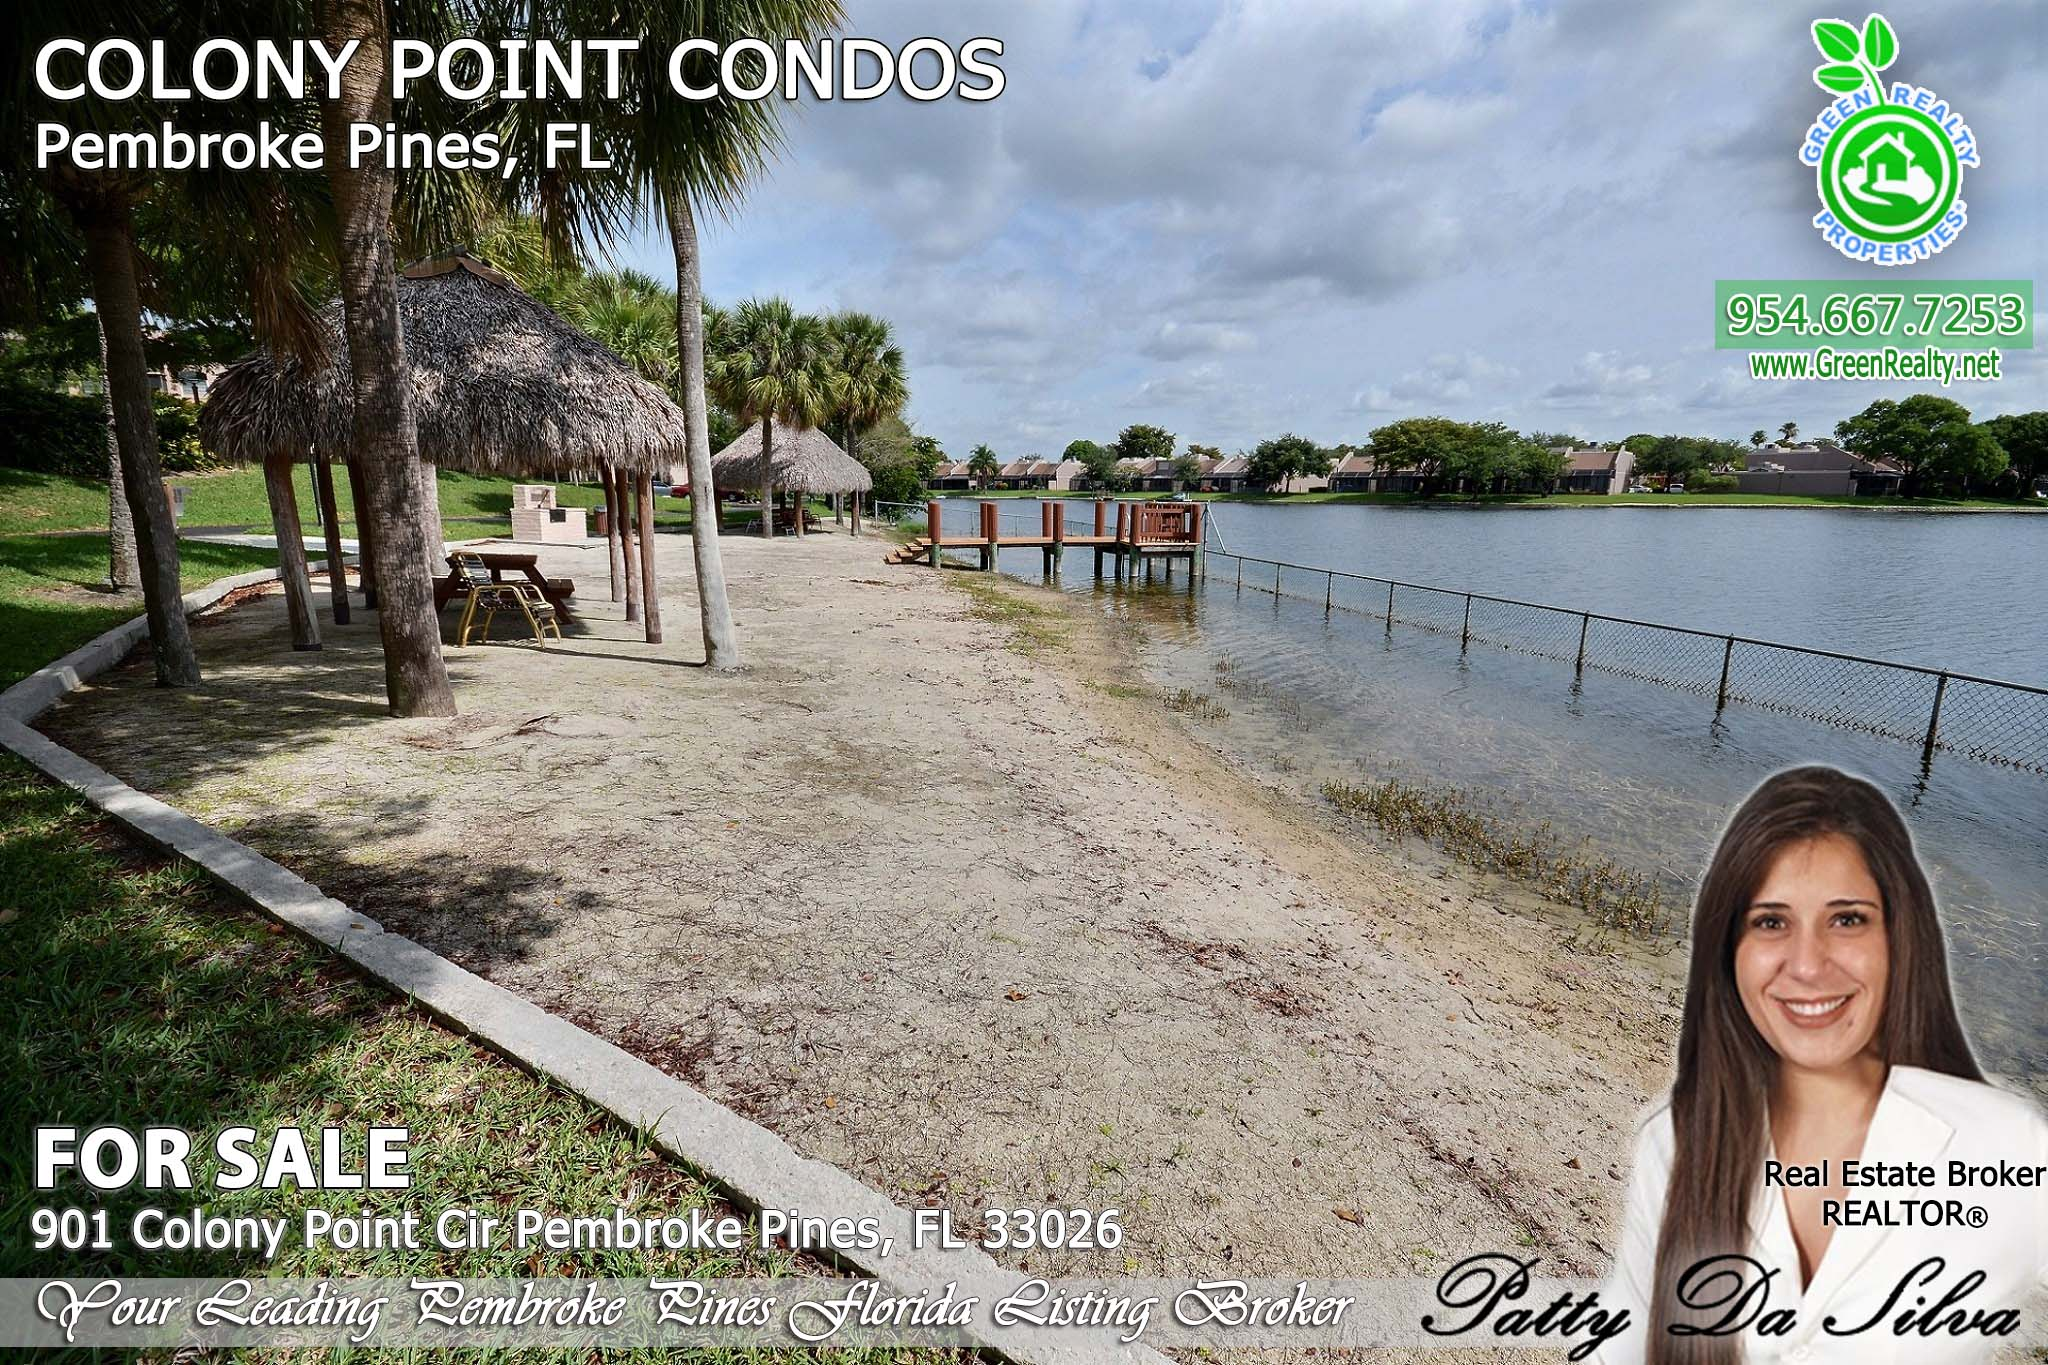 901 Colony Point Cir, Unit 112 - Pembroke Pines Homes For Sale (13)